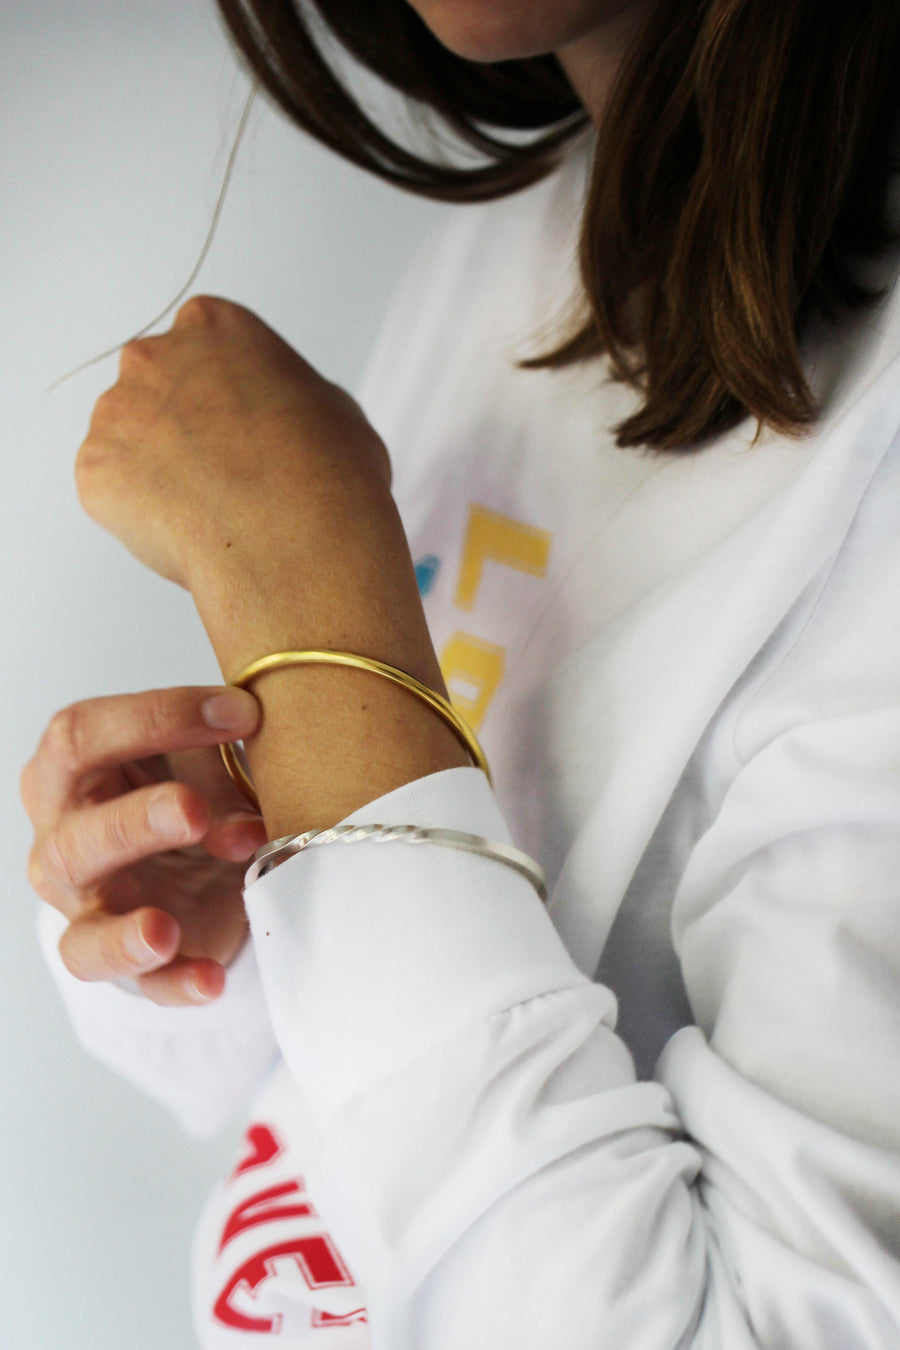 KIKI DIETERLE Circle Bracelet - The Good Store Berlin